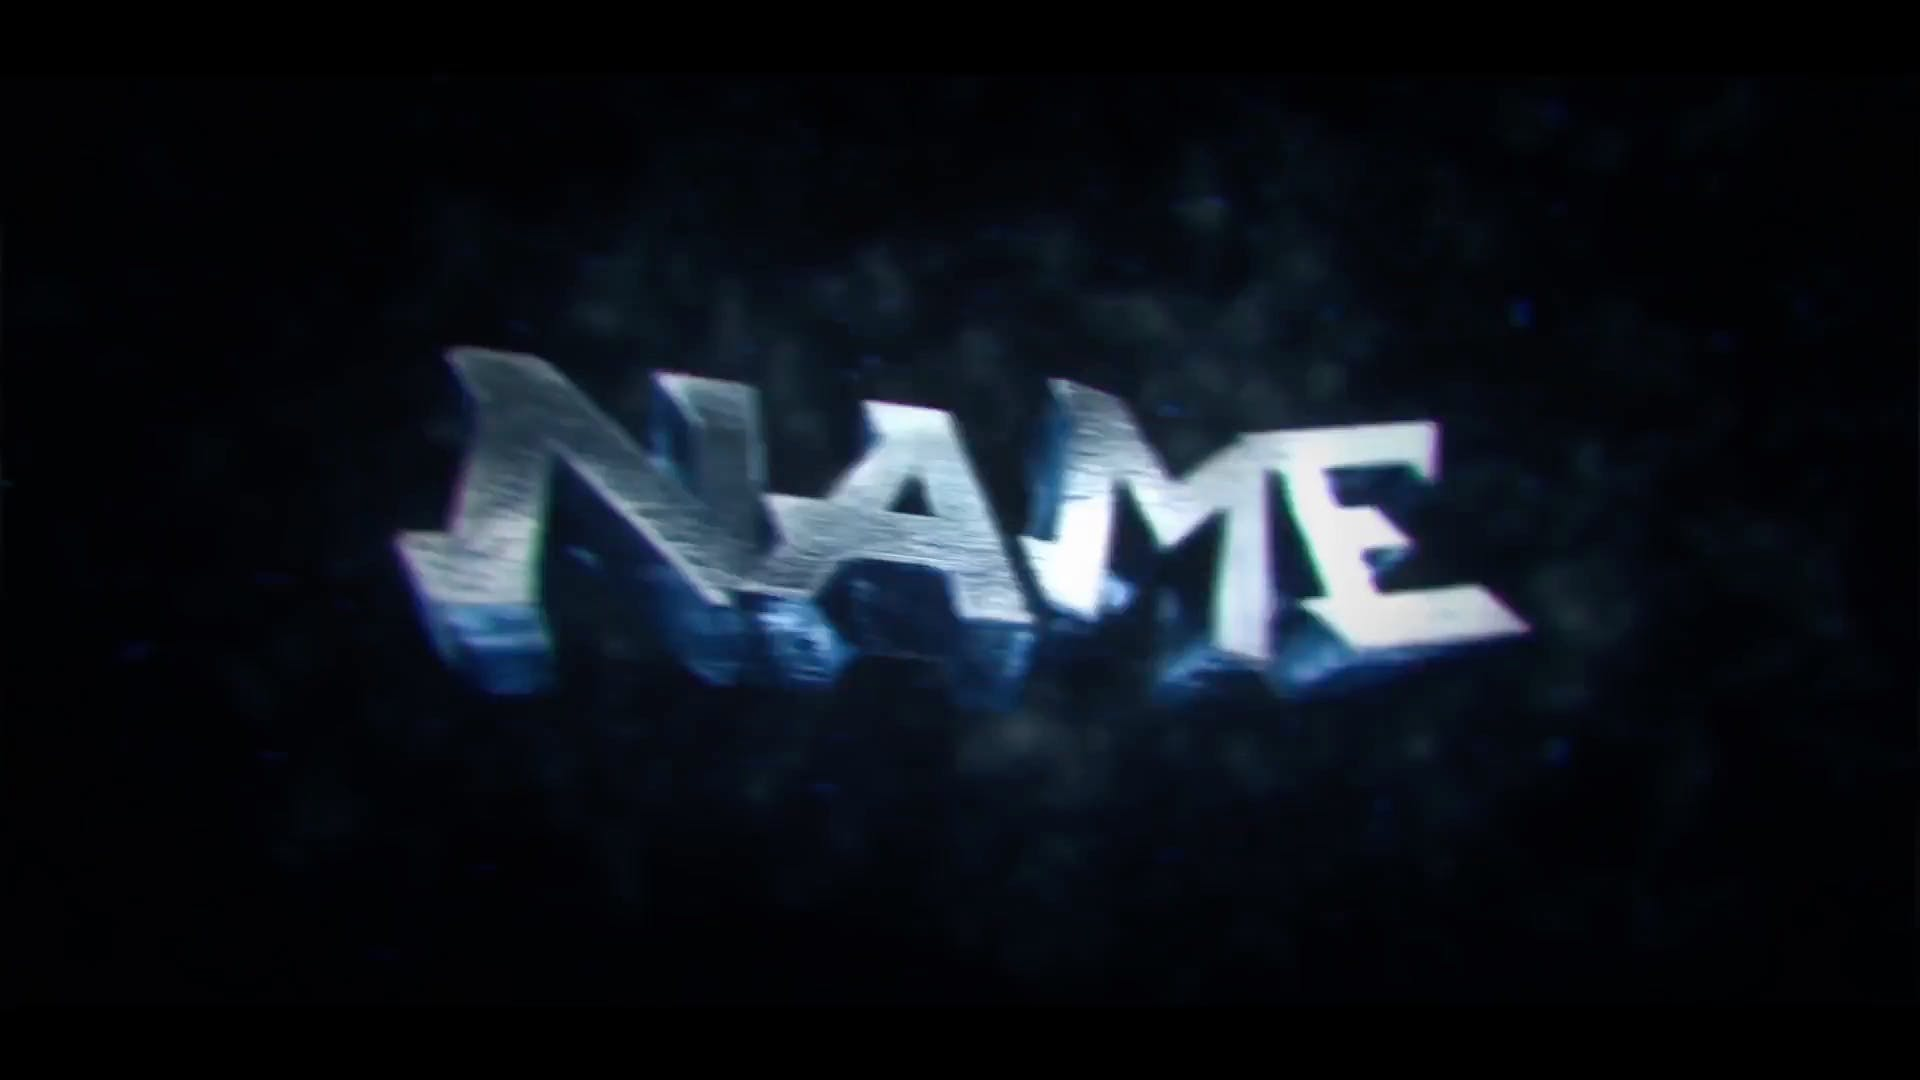 Blinking Cinema 4D After Effects Intro Template FREE DOWNLOAD